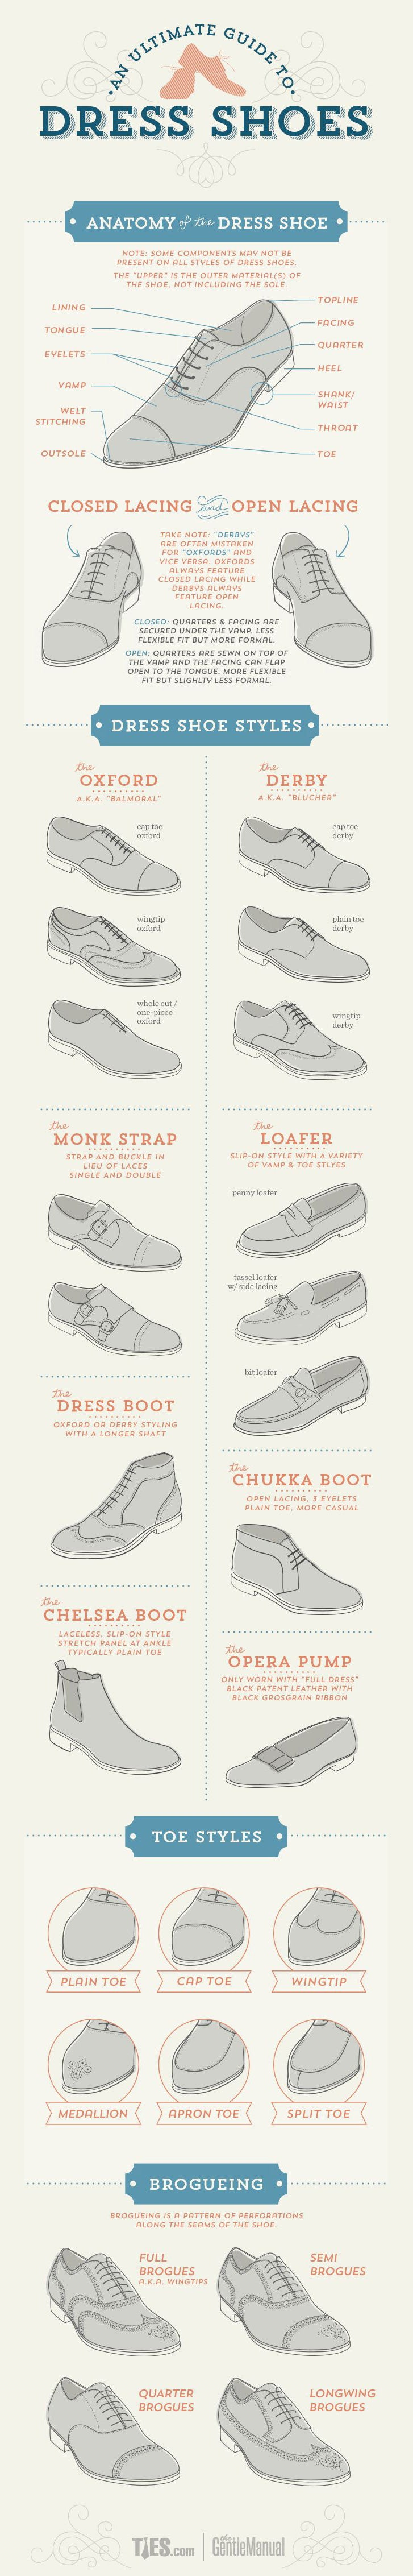 Dress Shoe Guide infographic